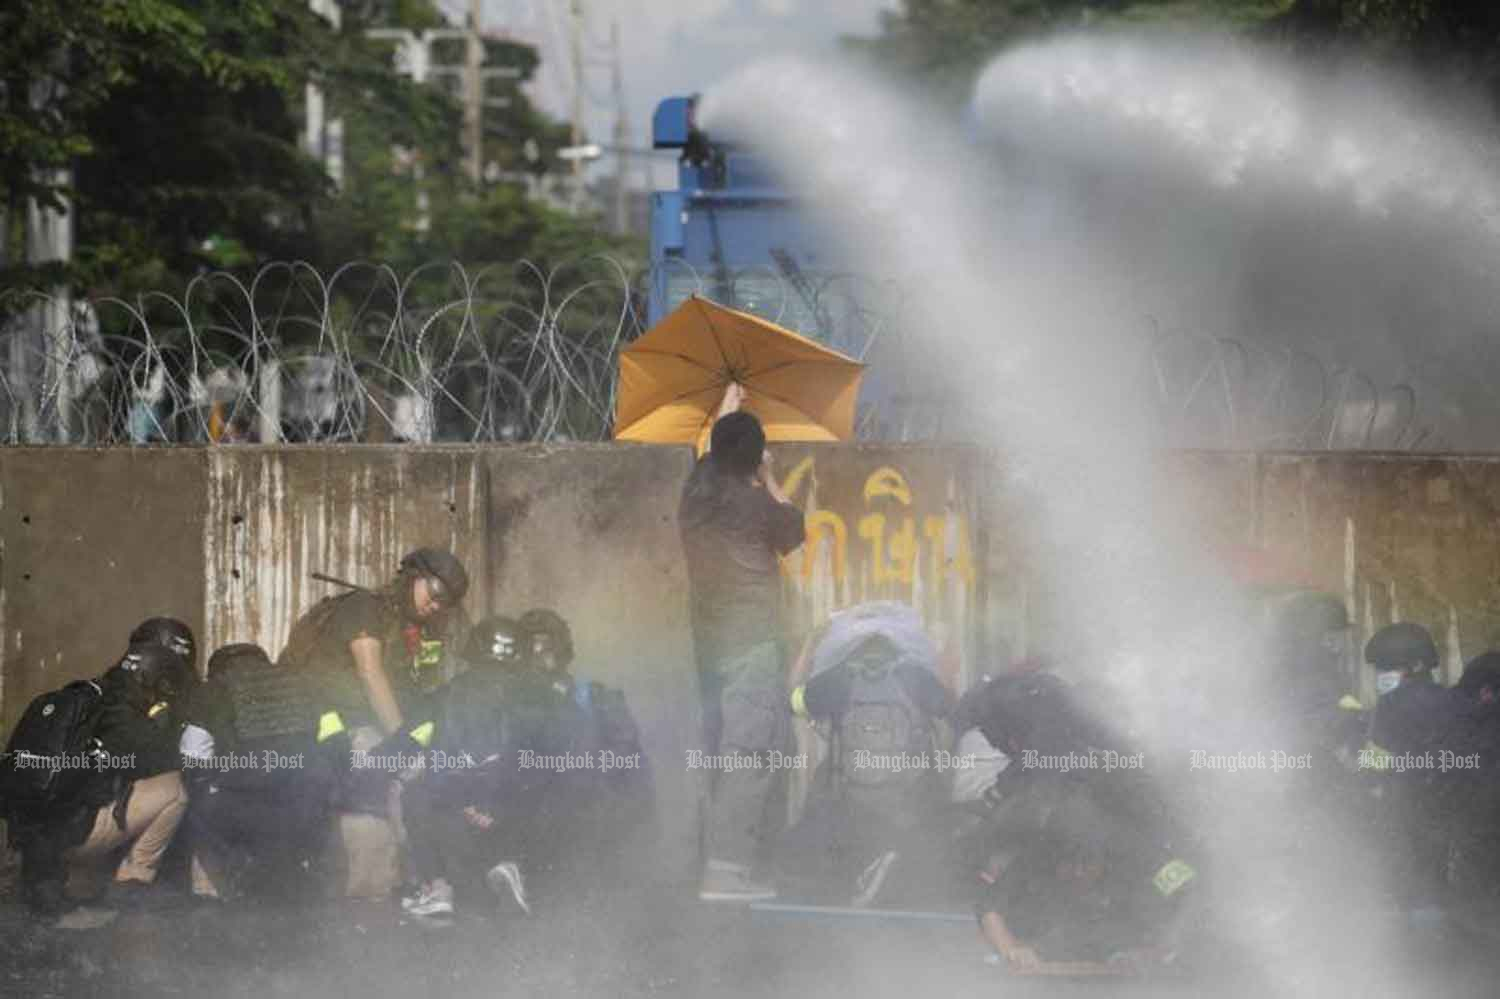 Demonstrators in protective gear take cover behind concrete barriers as riot police shoot water cannon to deter them from breaking through a barricade erected to block access to the parliament building, on Tuesday, in Dusit district of Bangkok. (Photo by Wichan Charoenkiatpakul)